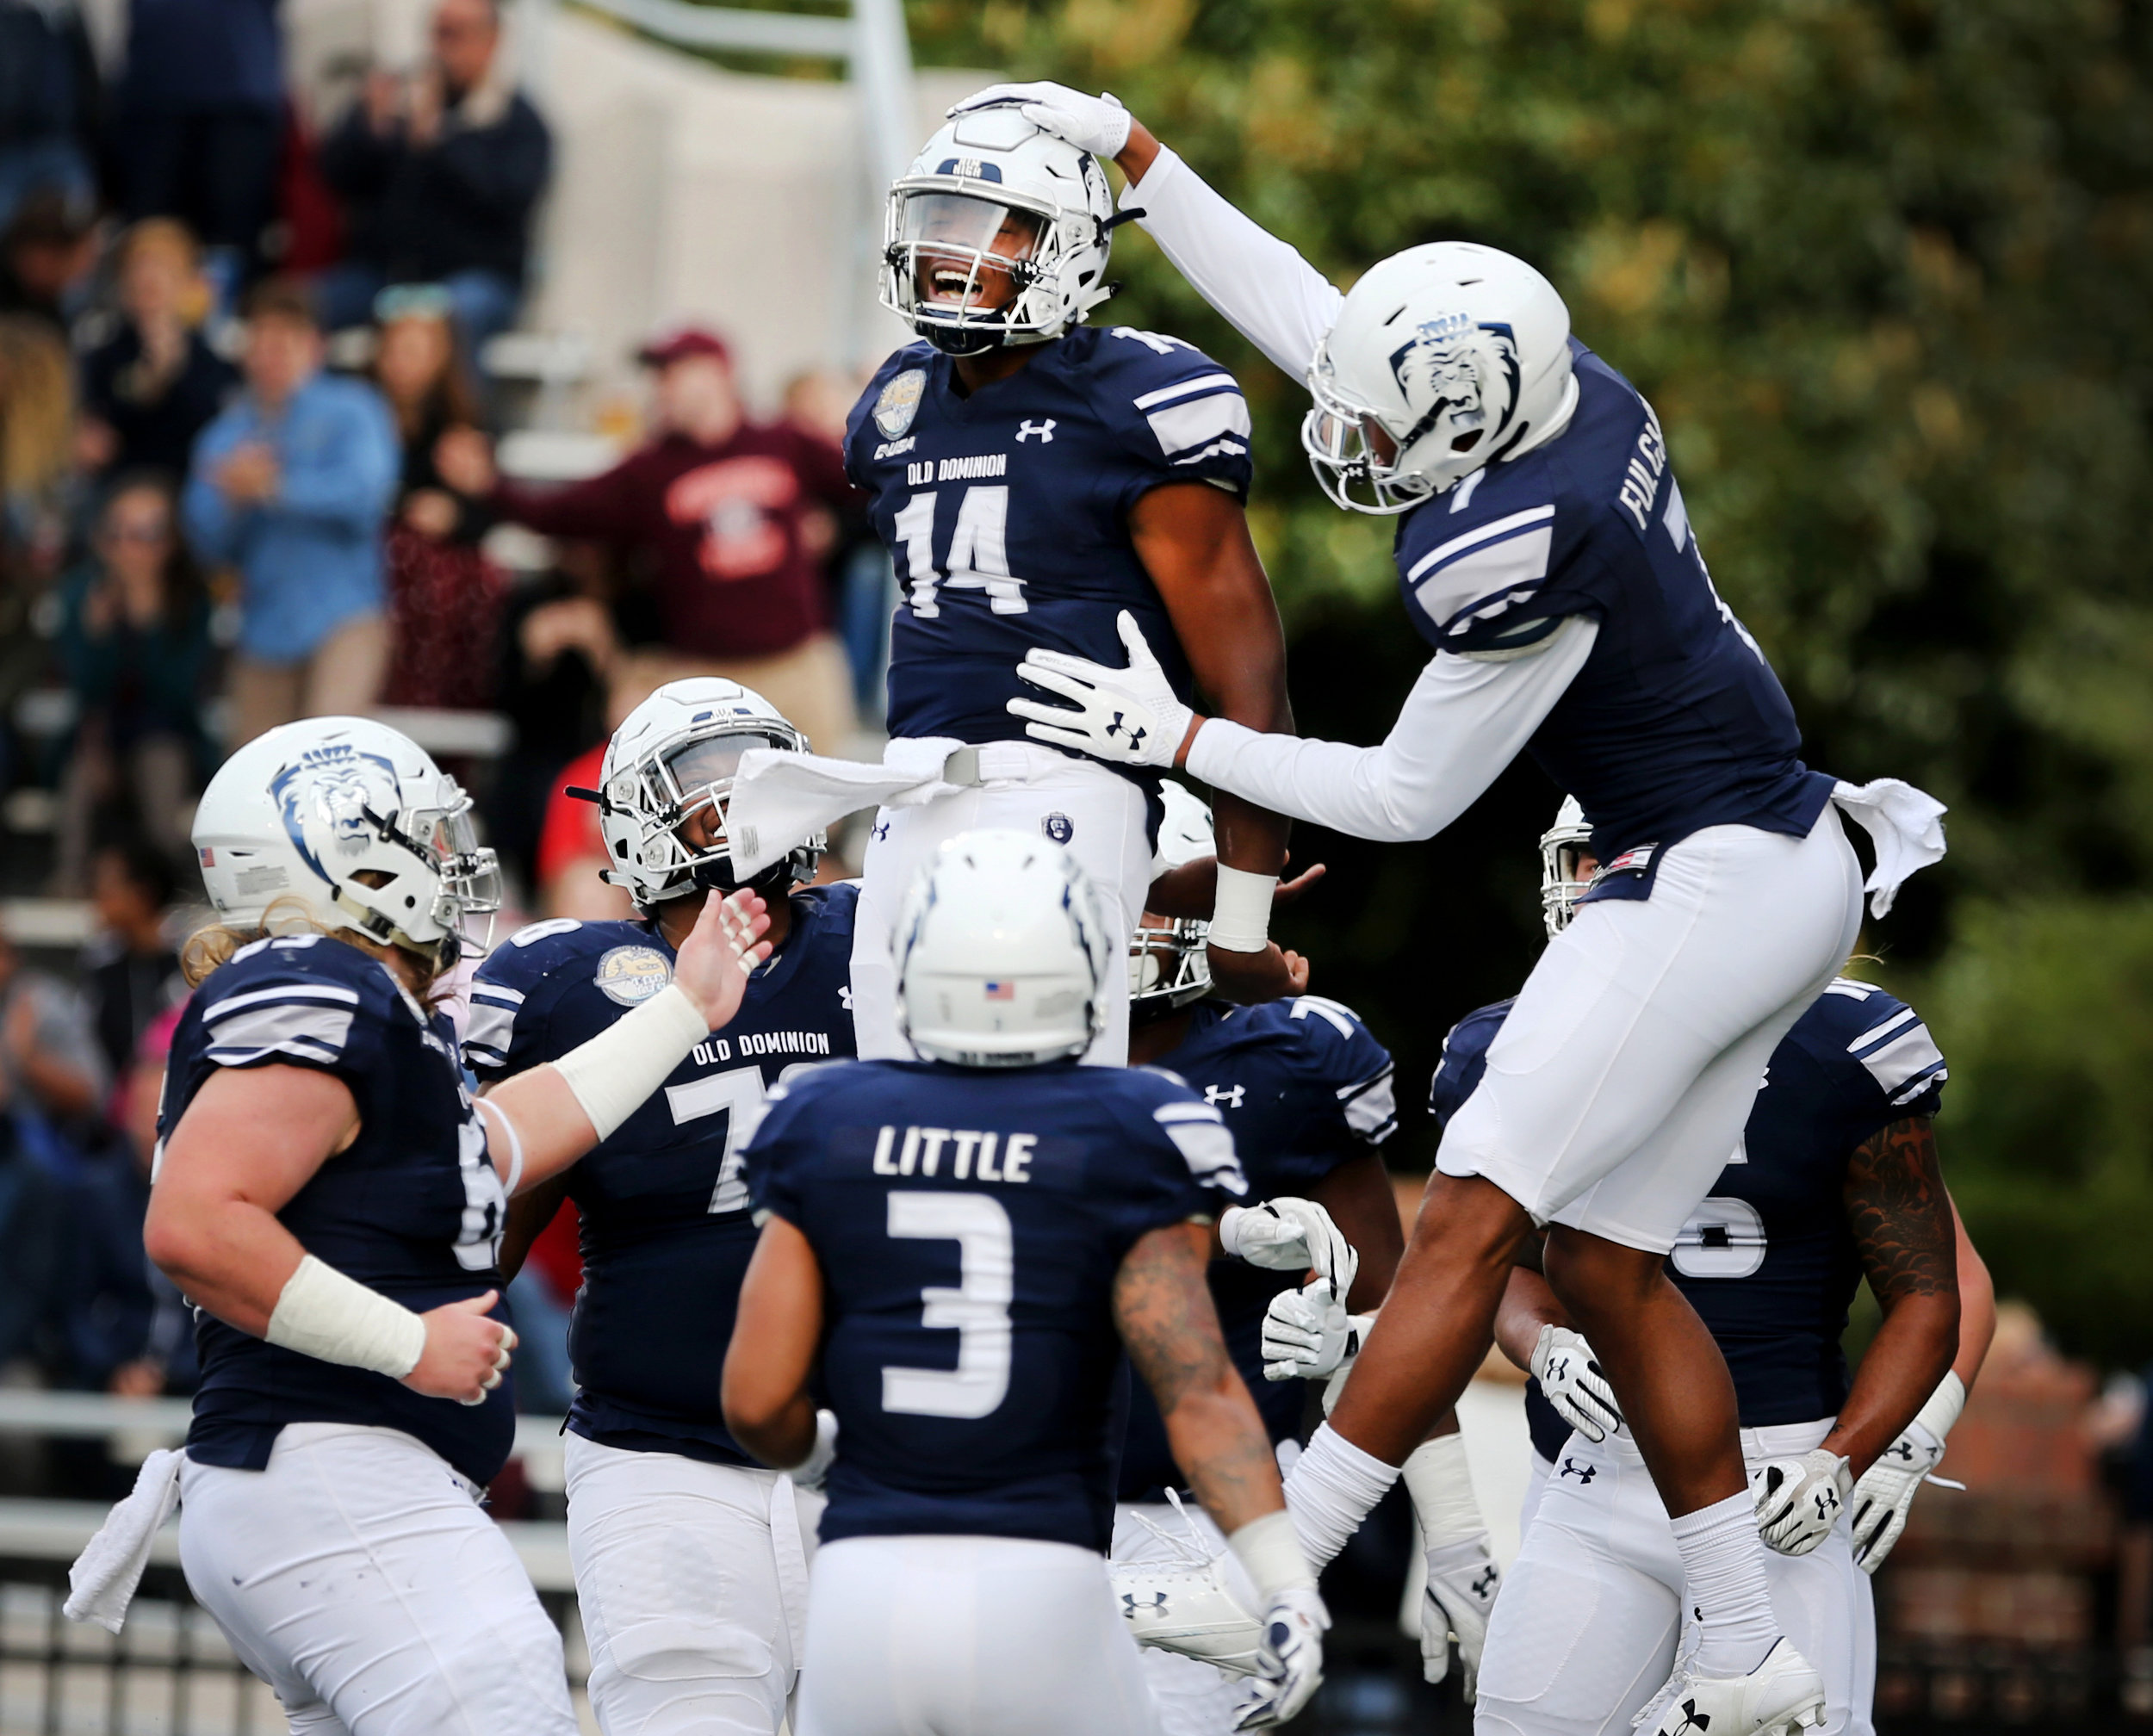 Old Dominion players celebrate with Steven Williams, Jr., center, after Williams ran the ball in on a quarterback keeper play for the first touchdown against Rice, Saturday, Nov. 18, 2017 at Foreman Field in Norfolk.